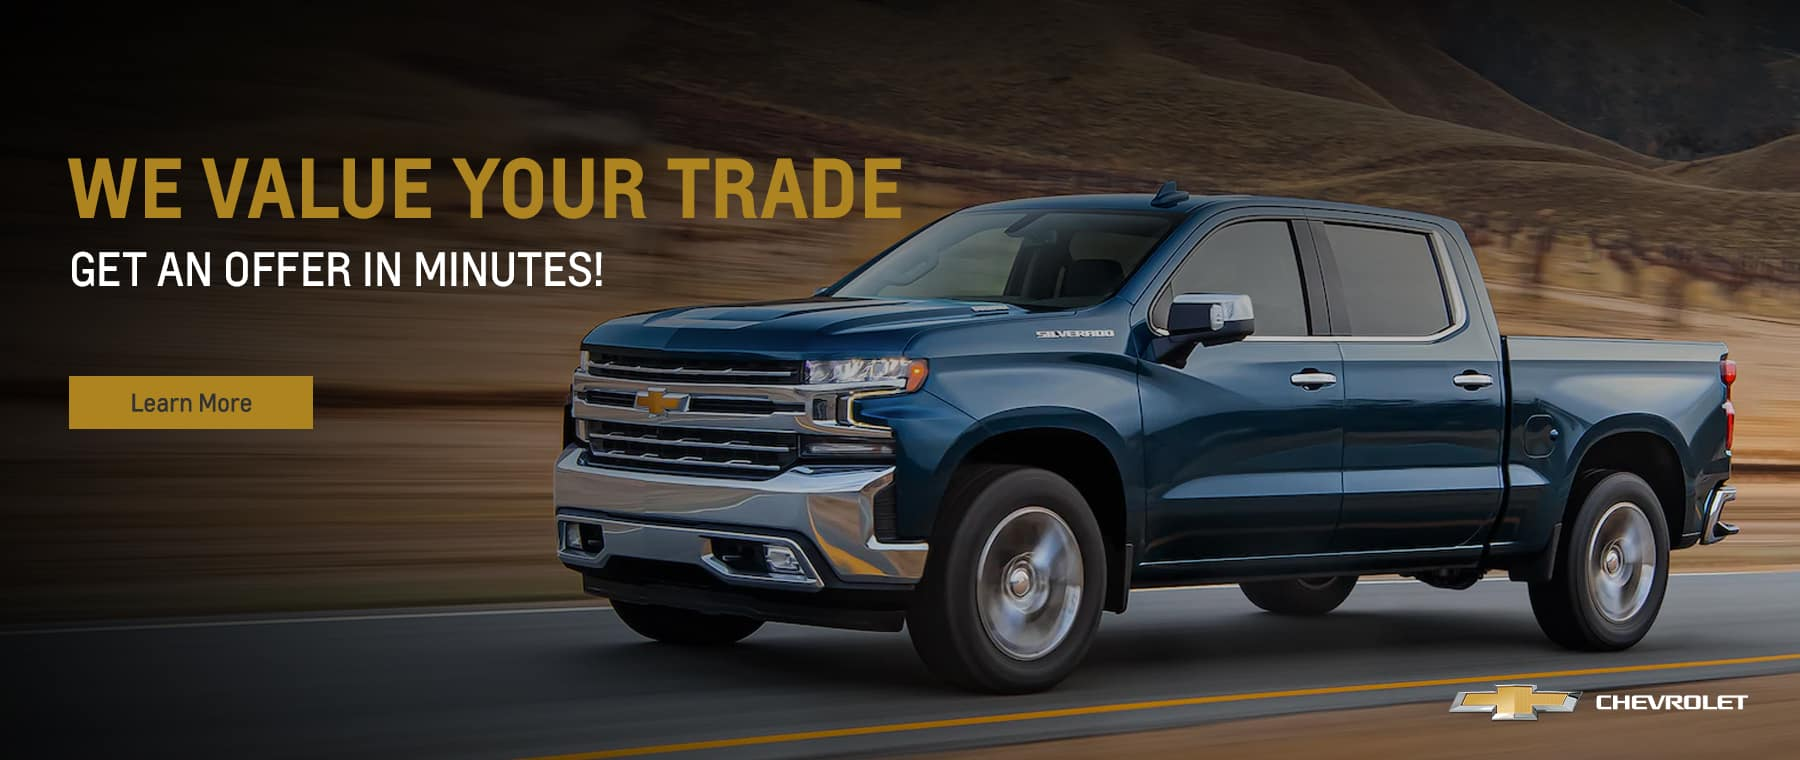 We Value Your Trade Get an offer in minutes!